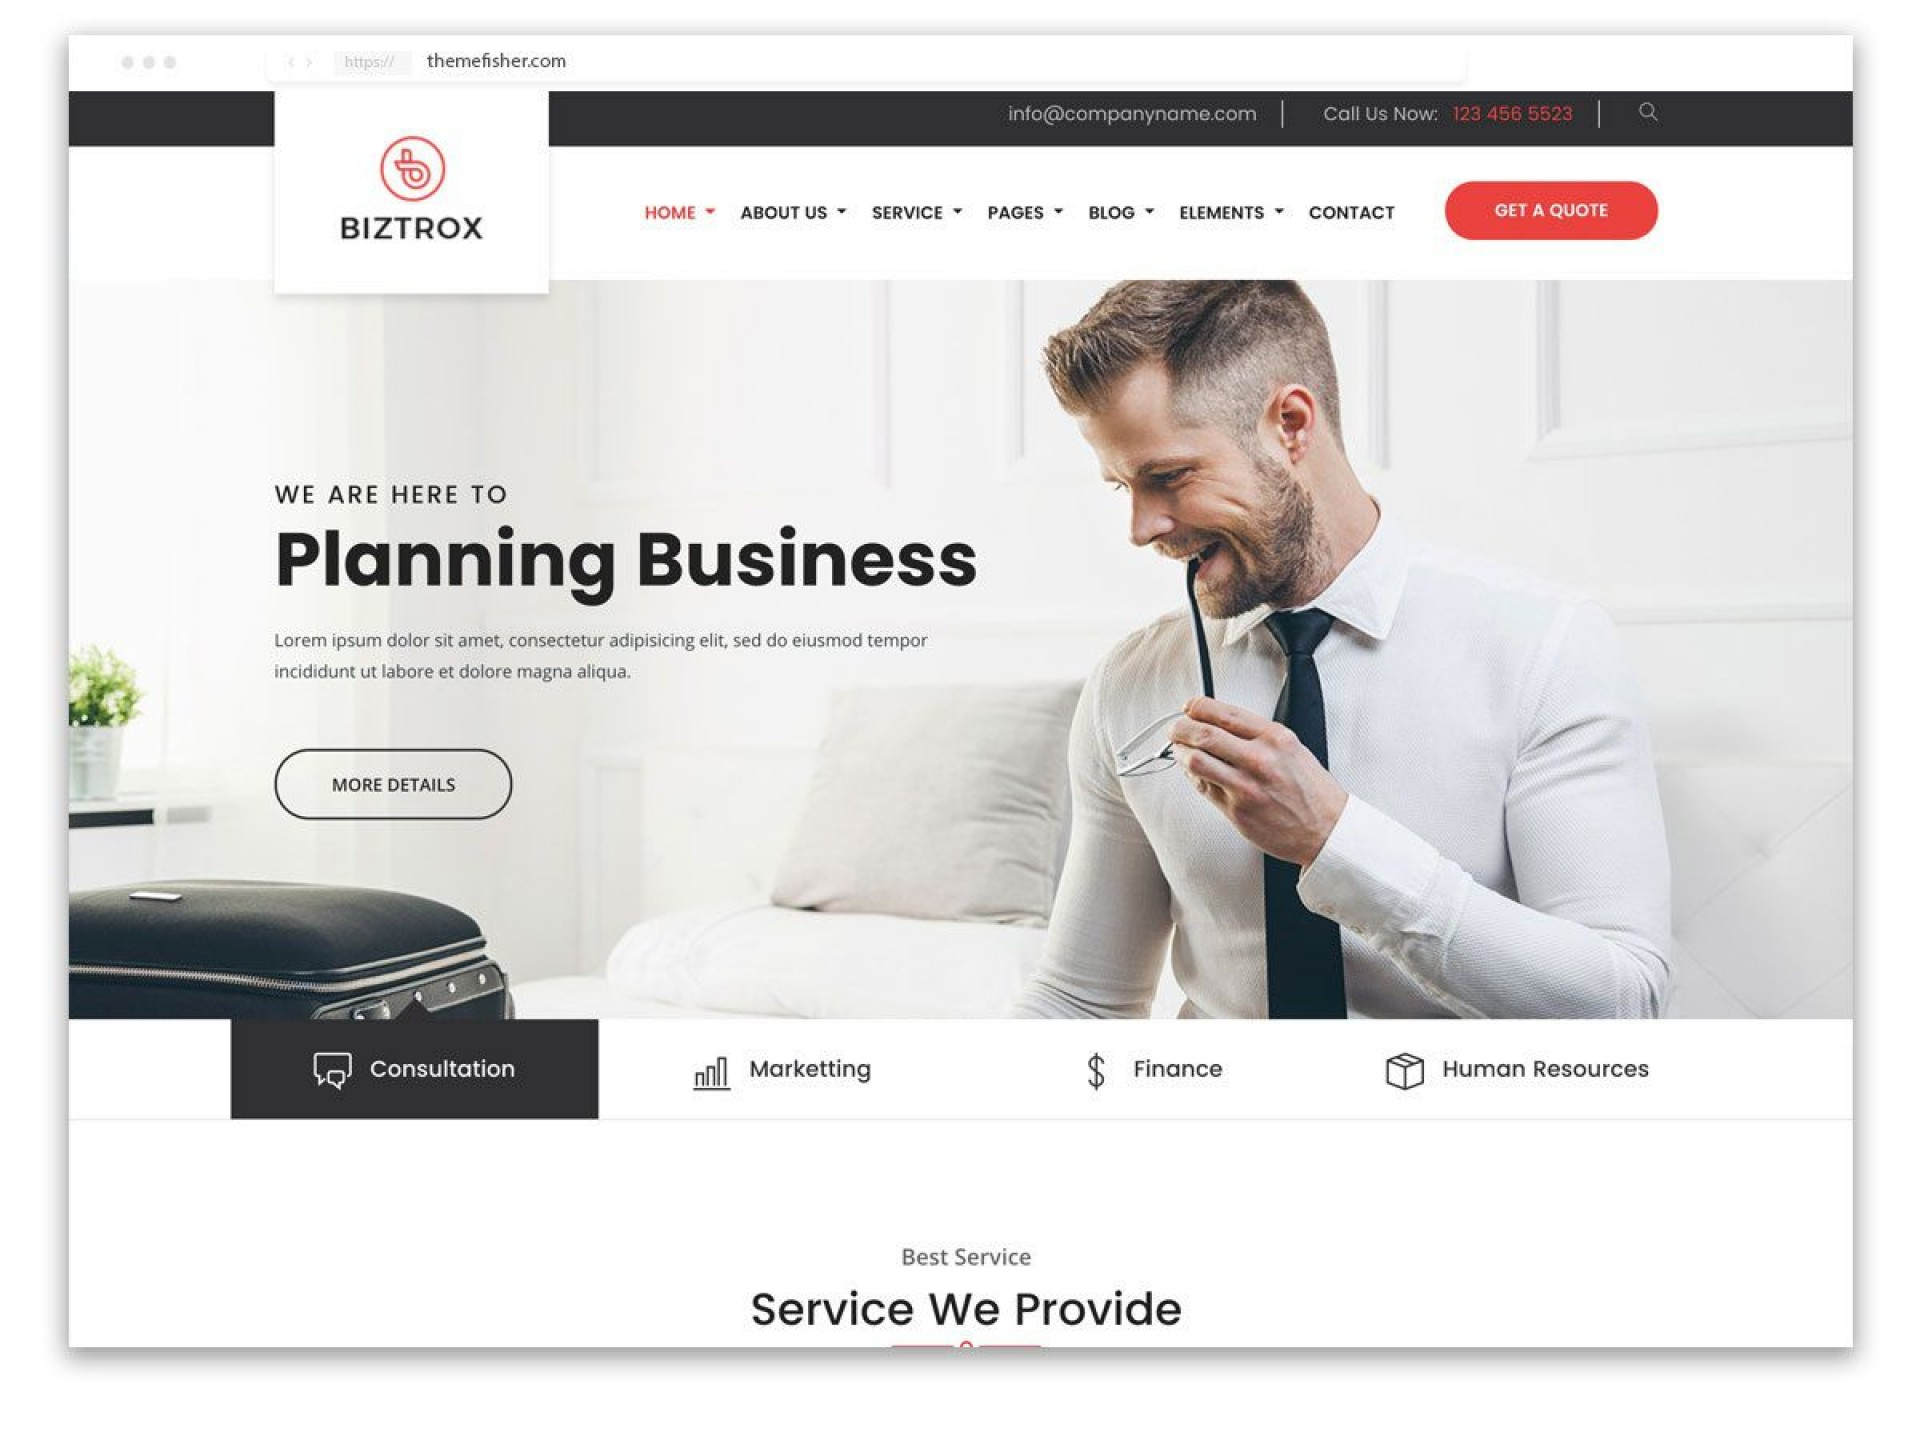 000 Magnificent Website Template Html Cs Free Download Concept  Registration Page With Javascript Jquery Responsive Student Form1920